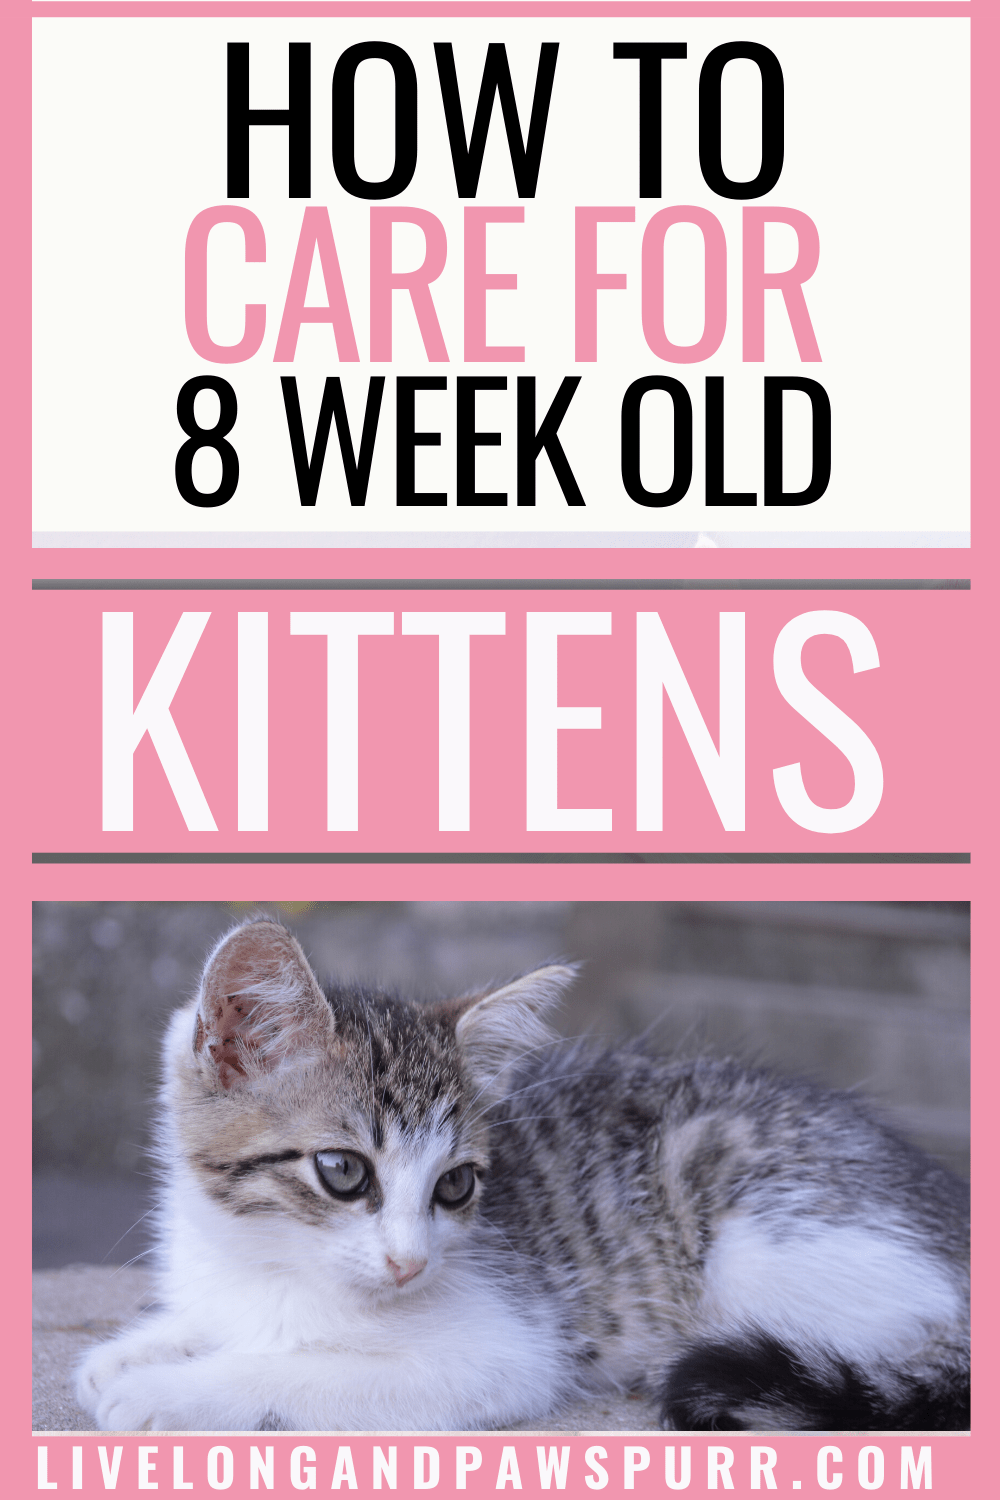 How To Easily Care For 8 Week Old Kittens Live Long And Pawspurr In 2020 Cat Training Kittens Kitten Care